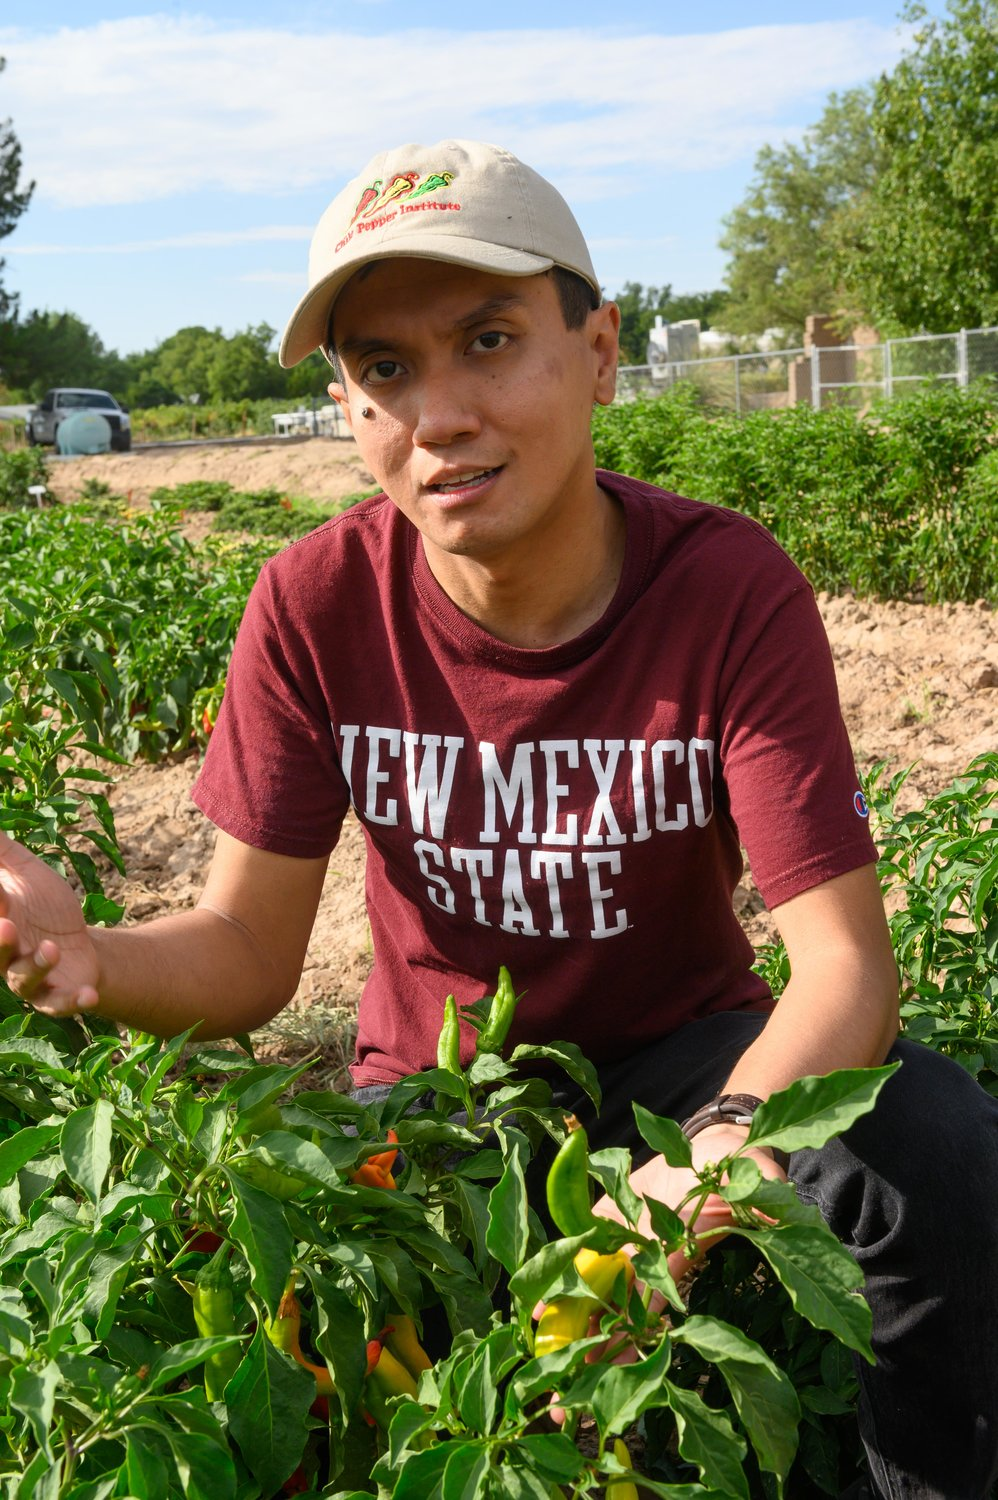 Dennis Nicuh Lozada, an assistant professor in the Department of Plant and Environmental Sciences at New Mexico State University, will lead the NMSU Chile Pepper Breeding and Genetics Program, housed at the Fabian Garcia Science Center in Las Cruces.